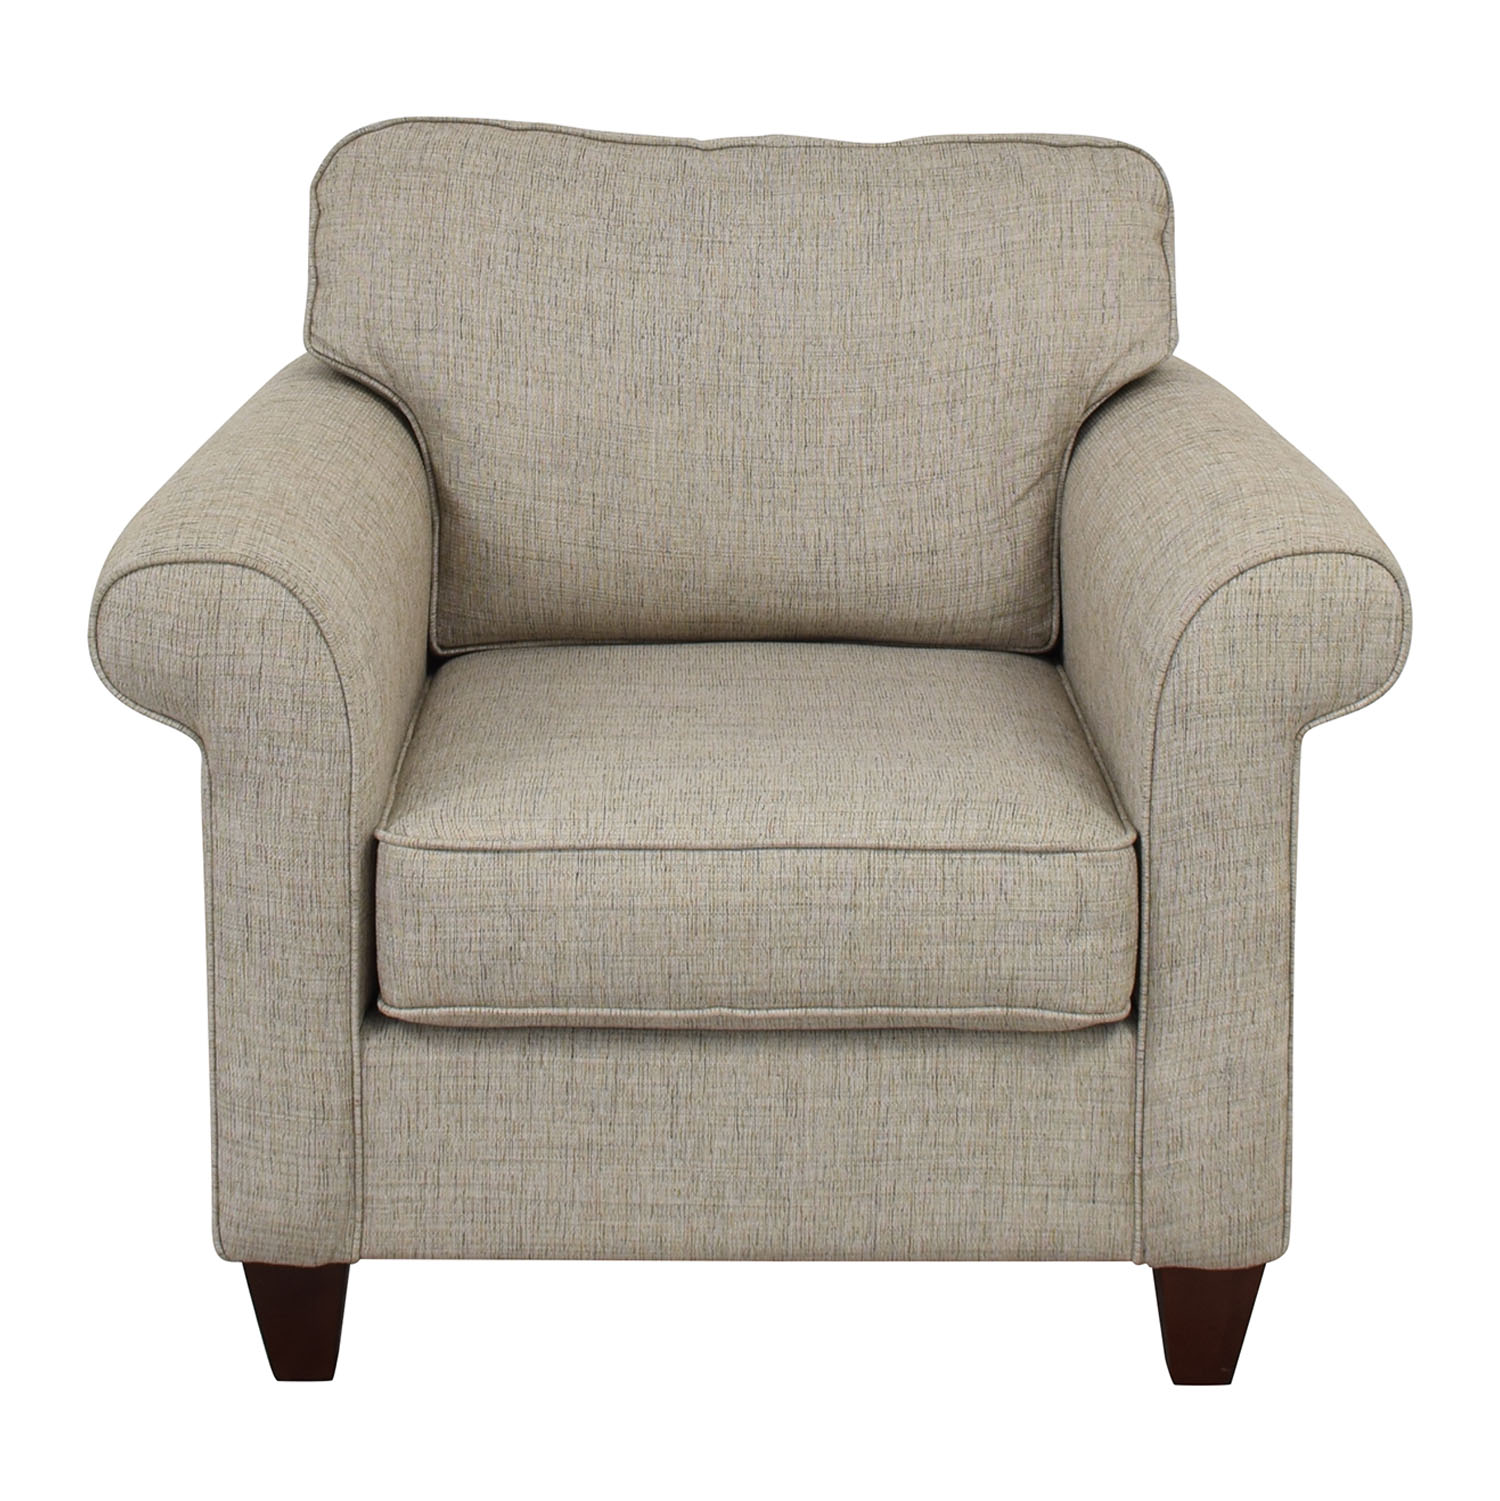 Craftmaster Furniture Craftsmaster Furniture Accent Chair on sale